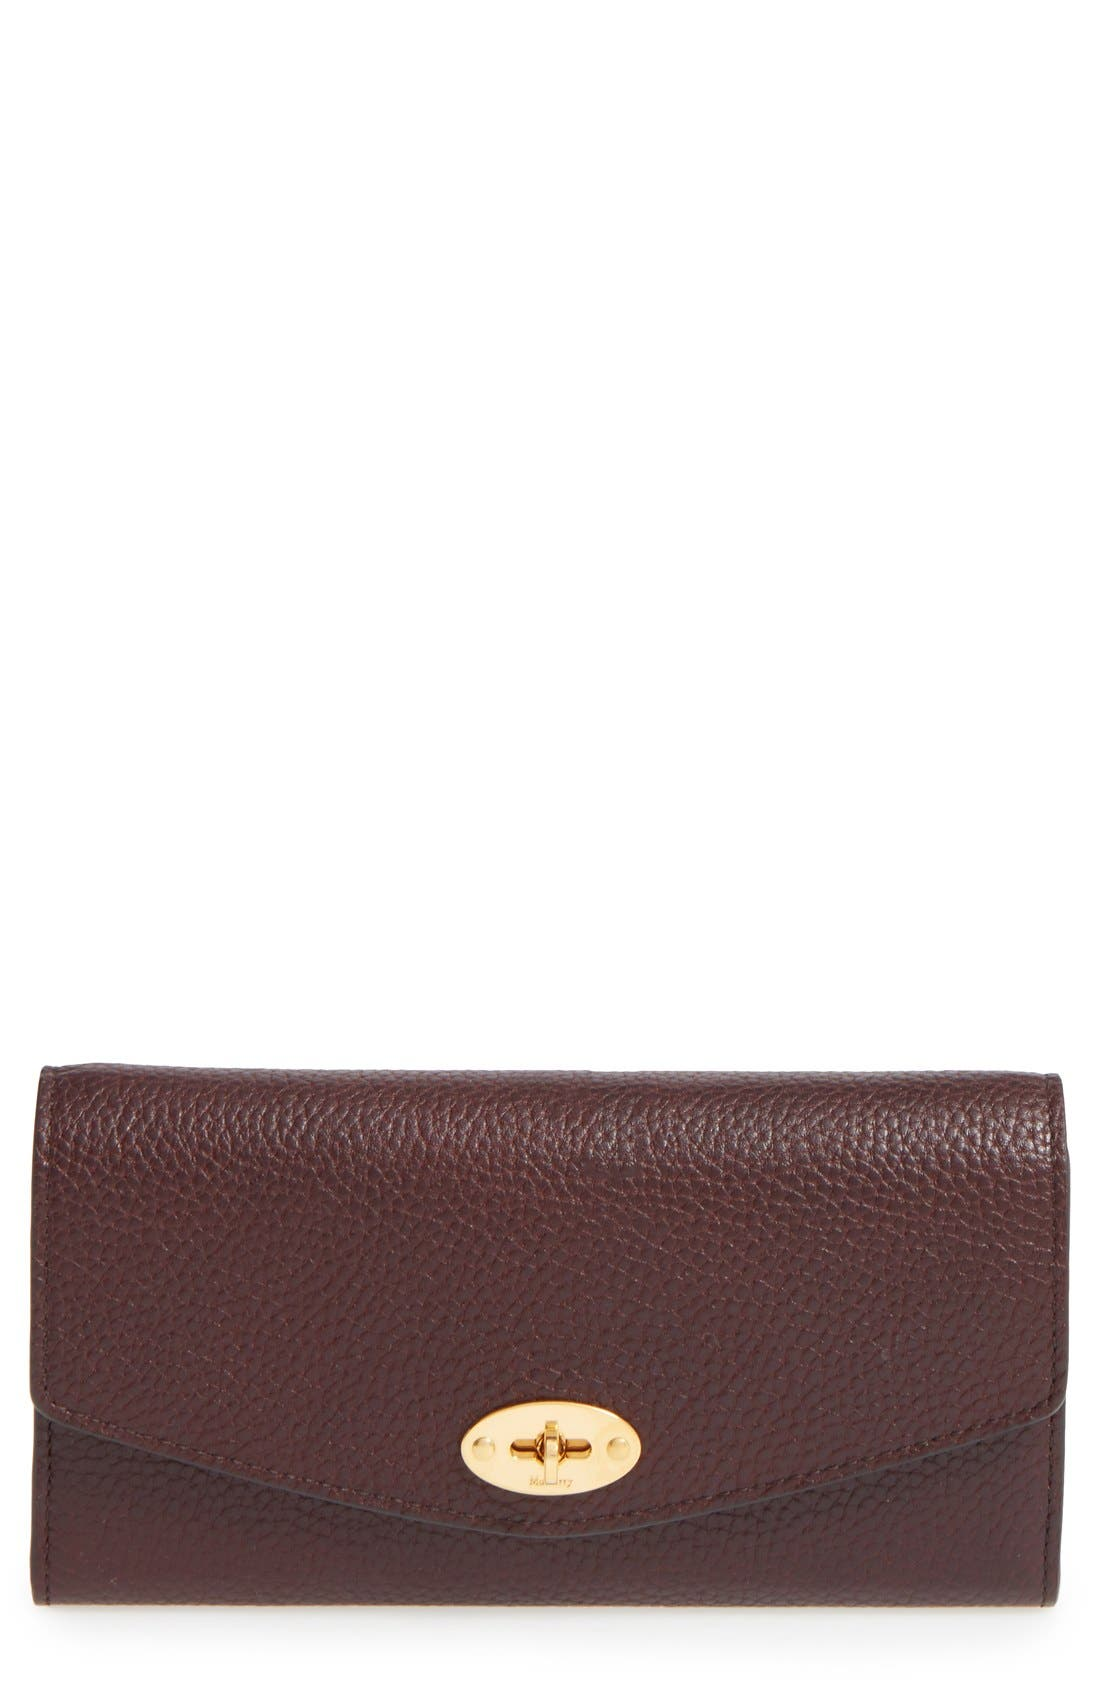 Mulberry 'Postman's Lock' Leather Wallet